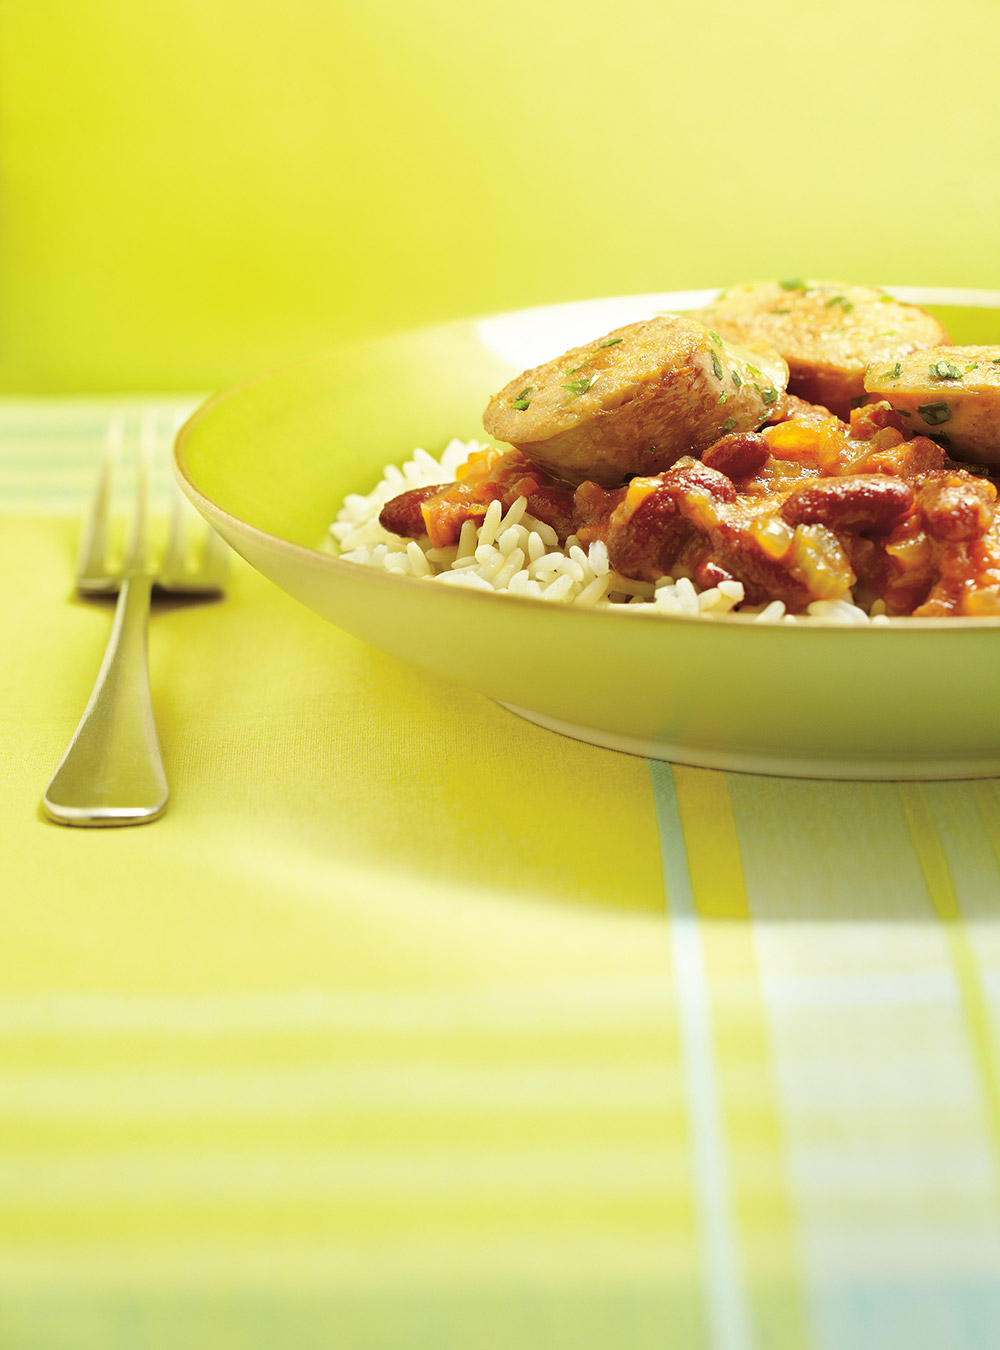 Ragoût de haricots rouges louisianais (red beans and rice) | ricardo